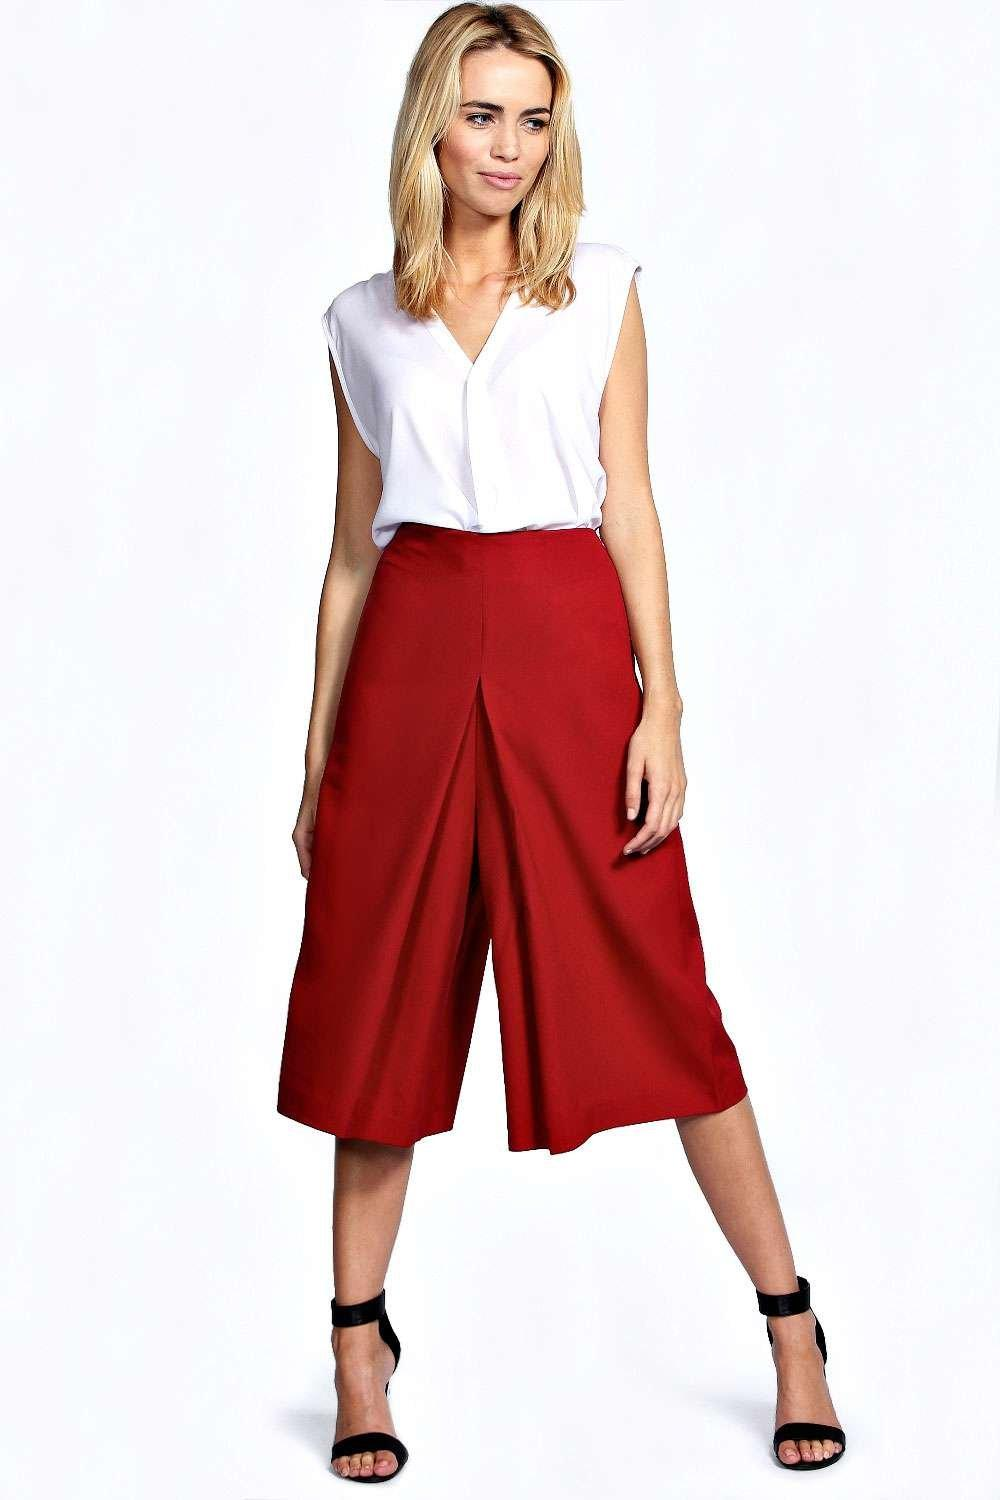 Add the latest styles with culottes to your staple wardrobe. Steal those brownie points with smart cropped trousers. Next day delivery & free returns available.